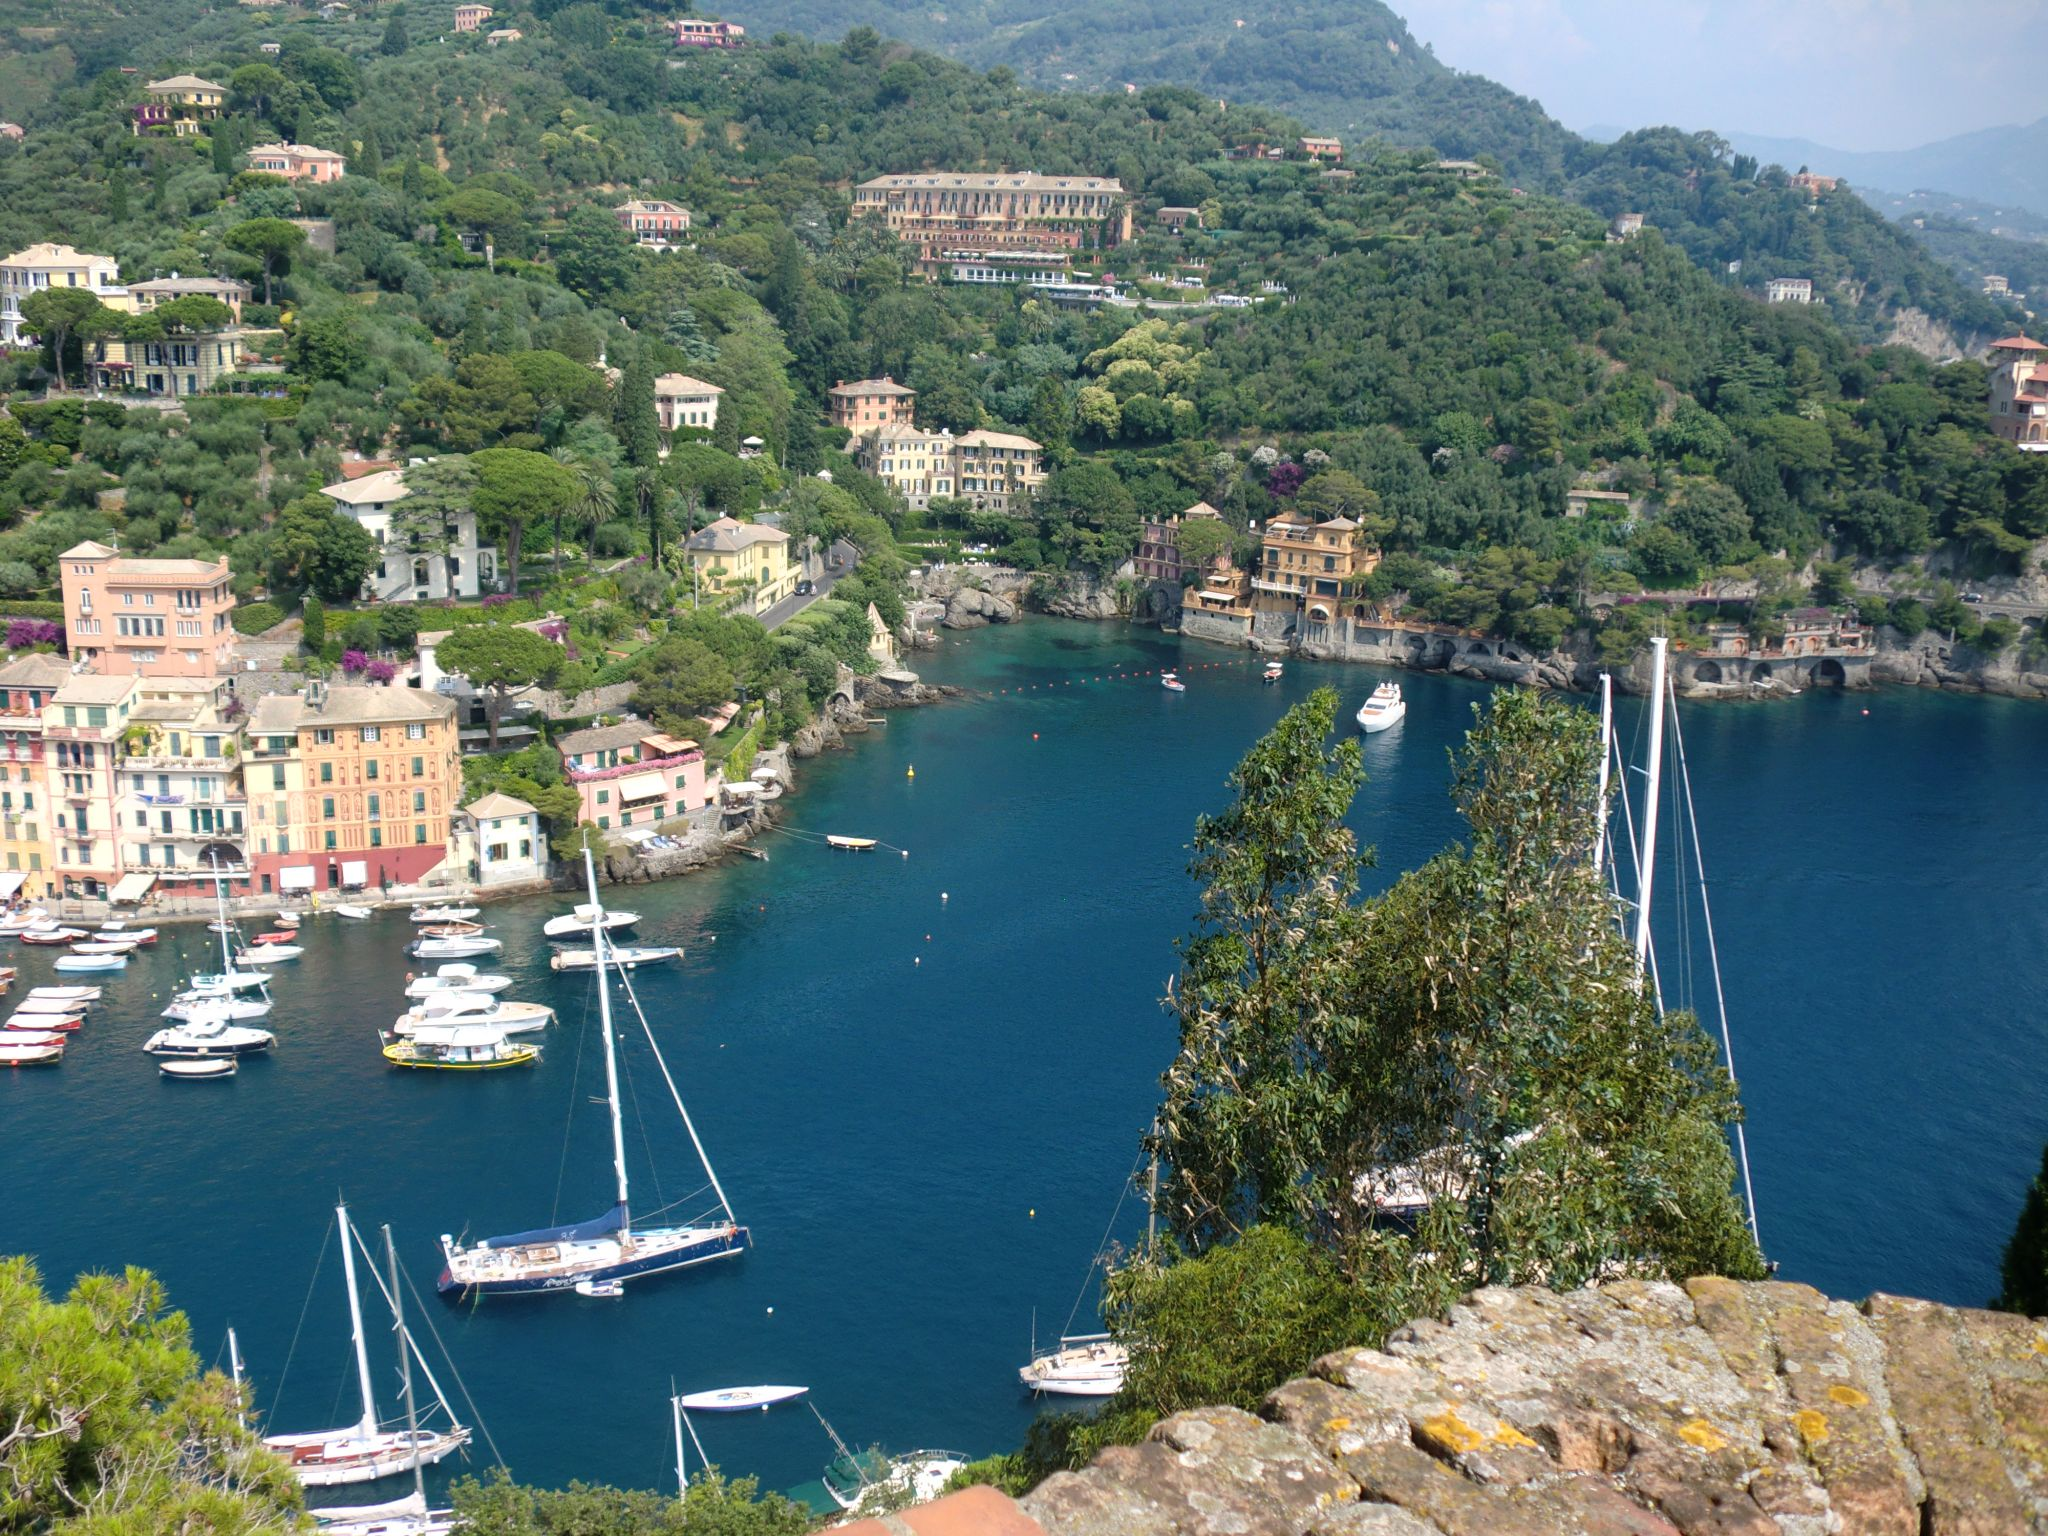 Portofino 45 - Portofino: a small pearl on the sea